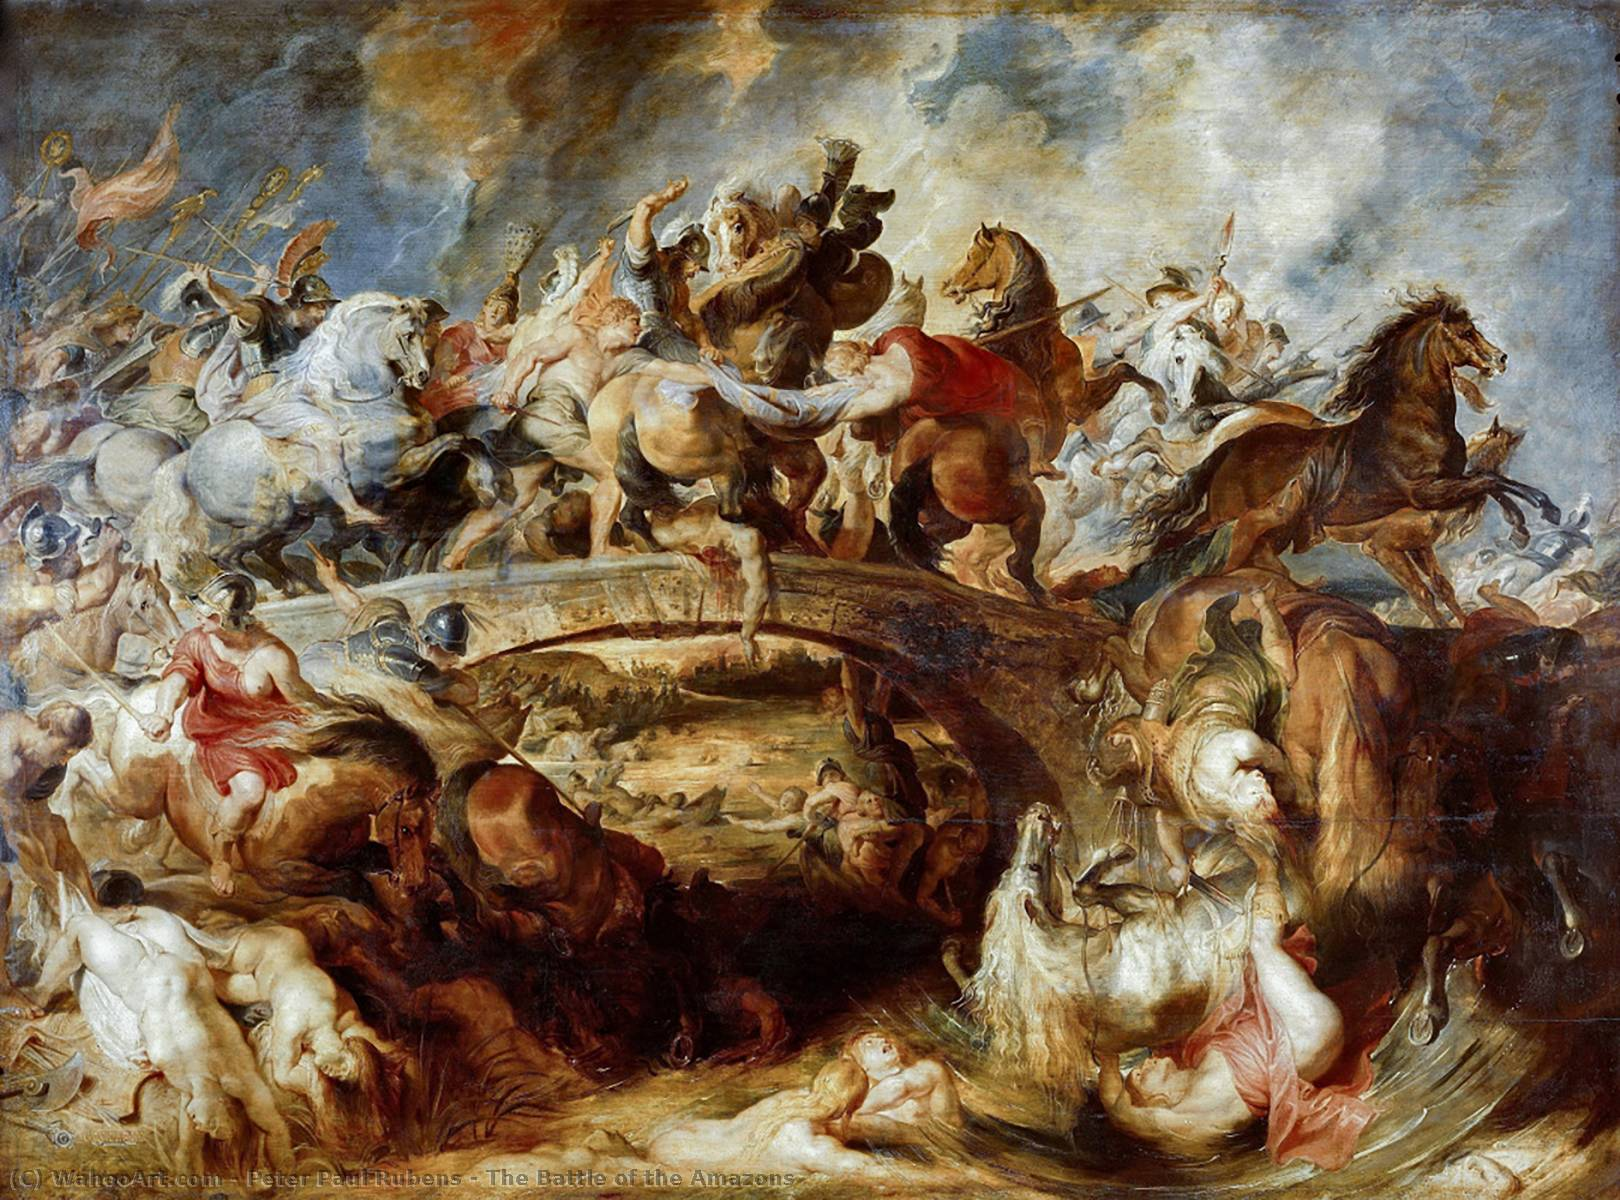 famous painting la battaglia di le amazzoni of Peter Paul Rubens